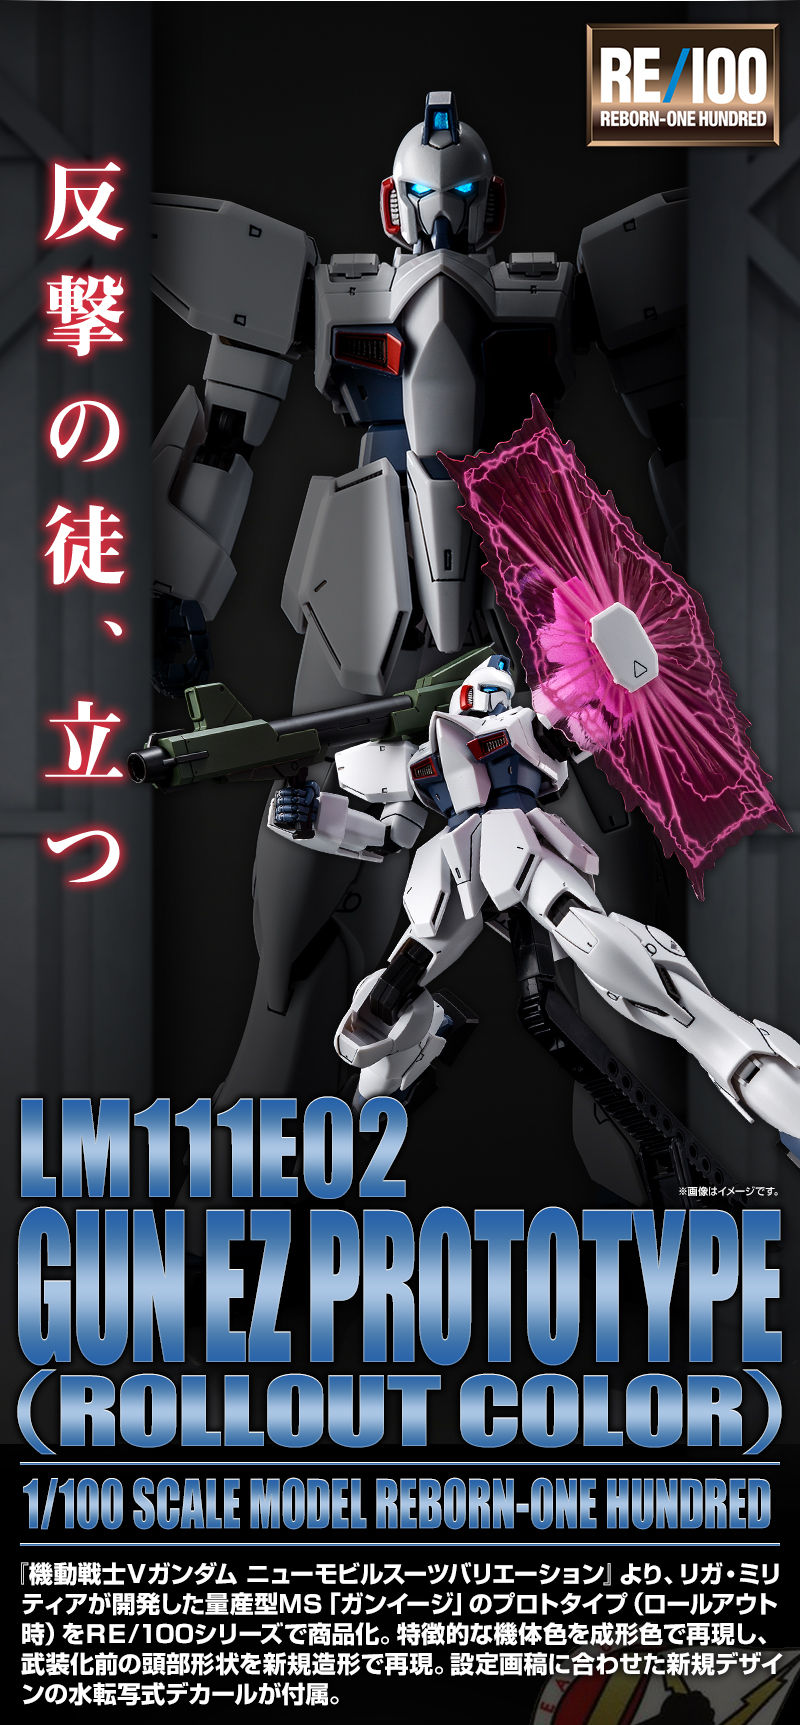 P-Bandai RE/100 GUN EZ PROTOTYPE (ROLLOUT COLOUR)